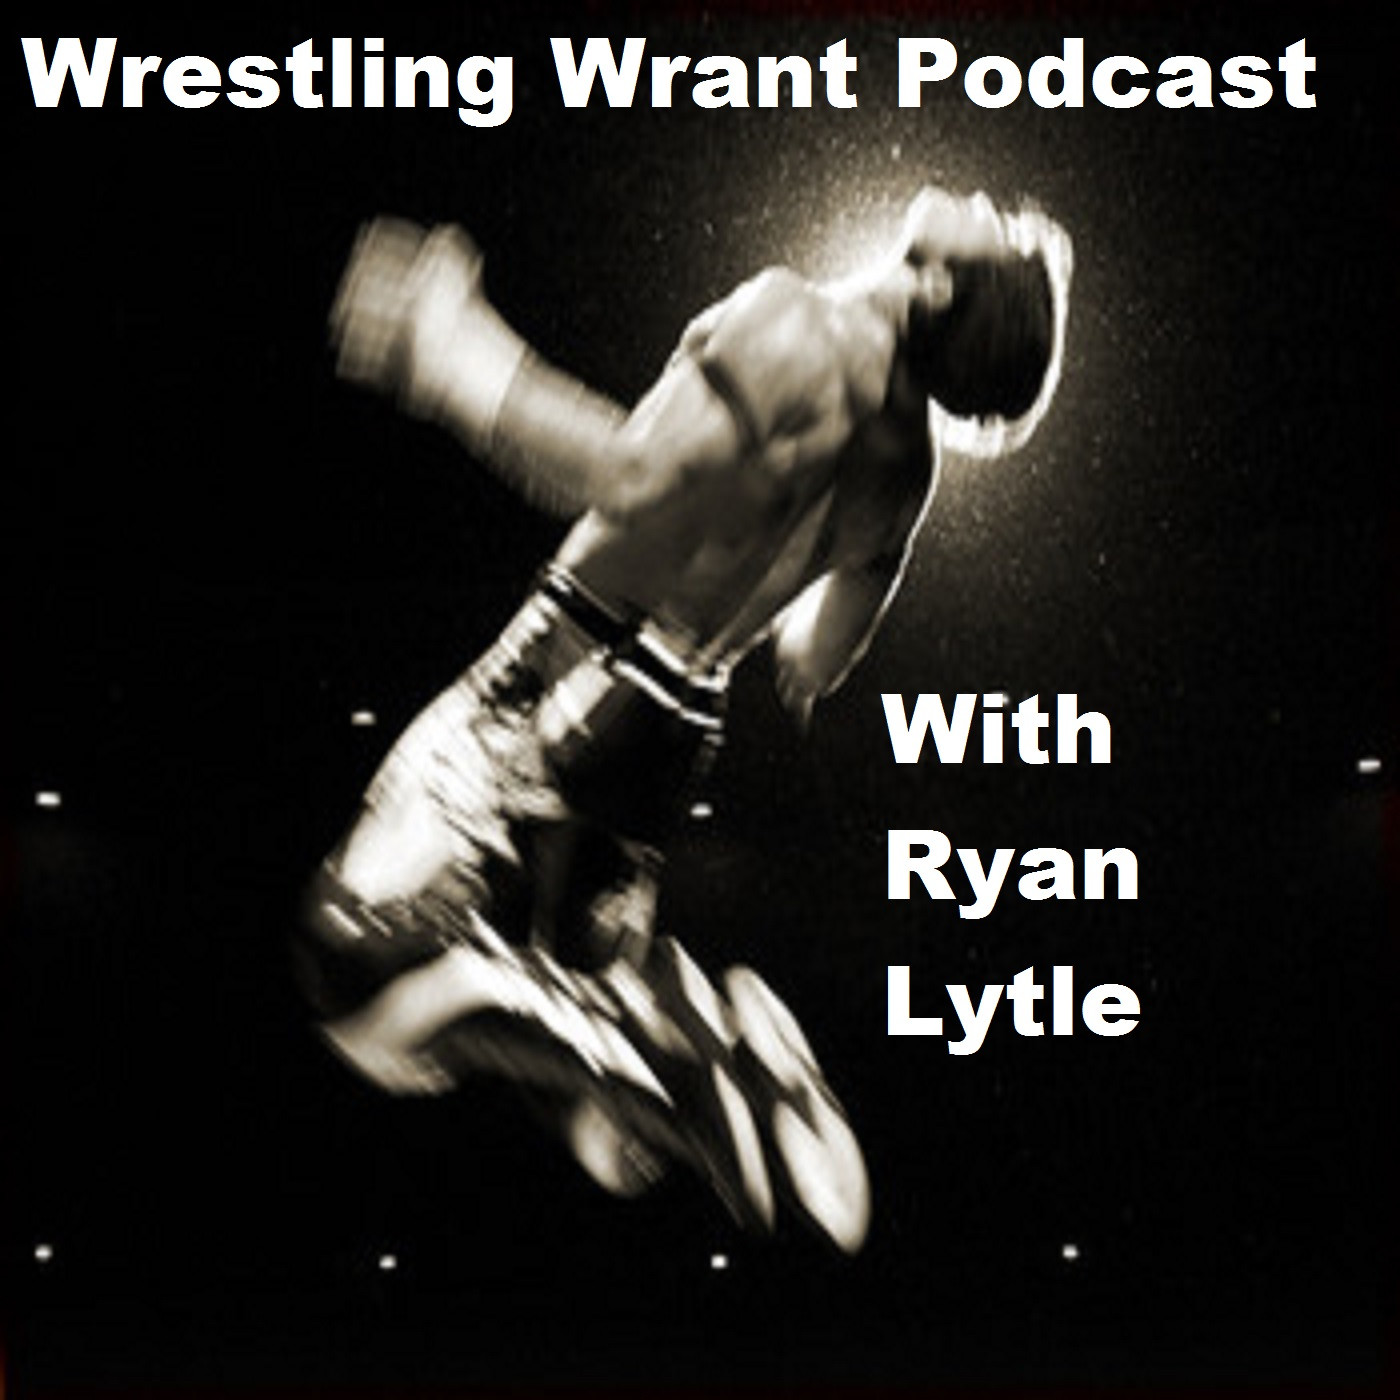 Wrestling Wrant Podcast